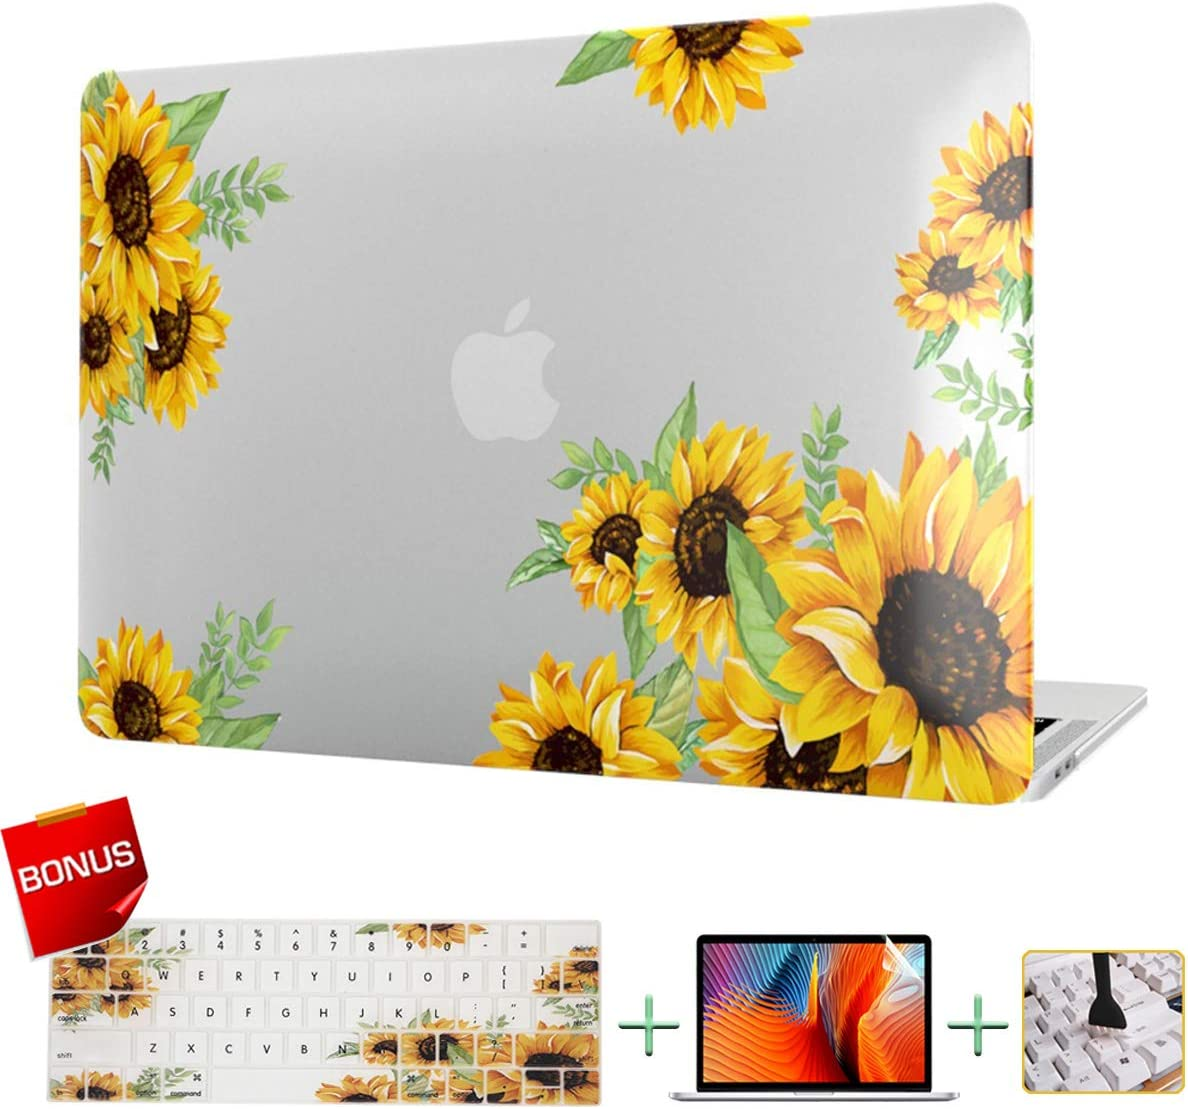 VAESIDA MacBook Pro 13 Inch Case Sunflower, Laptop Case Hard Shell Cover Only for Mac Pro 13 inch (Older Version With CD Drive 2008-2012 Release, Model: A1278) with Keyboard Cover and Screen Protector